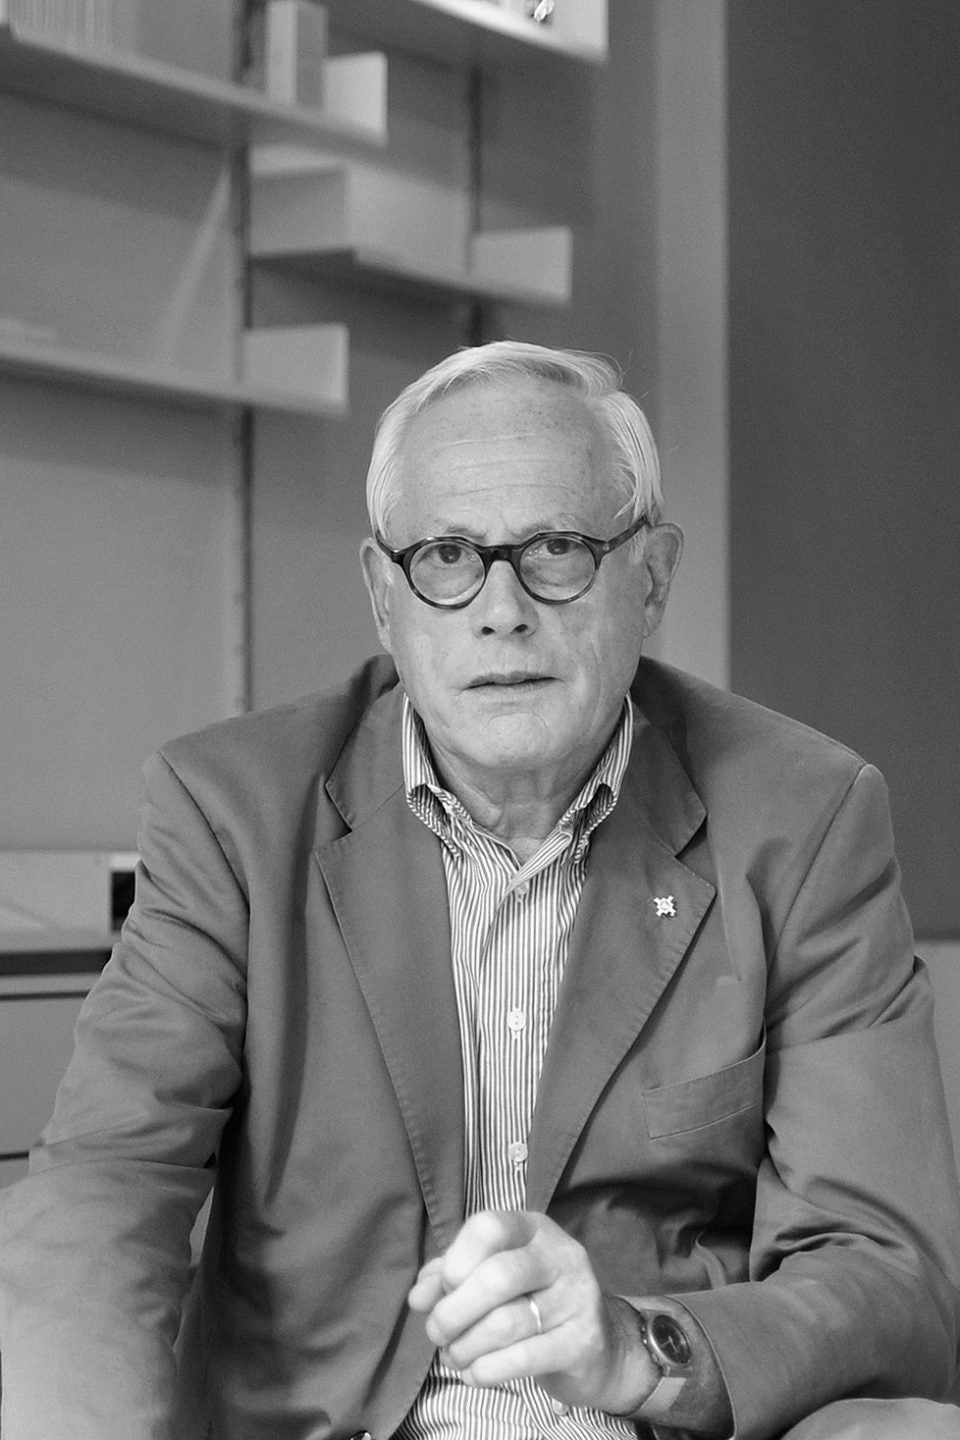 Industrial Design Giant Dieter Rams' Uneasy Relationship with the Technology He Helped Create